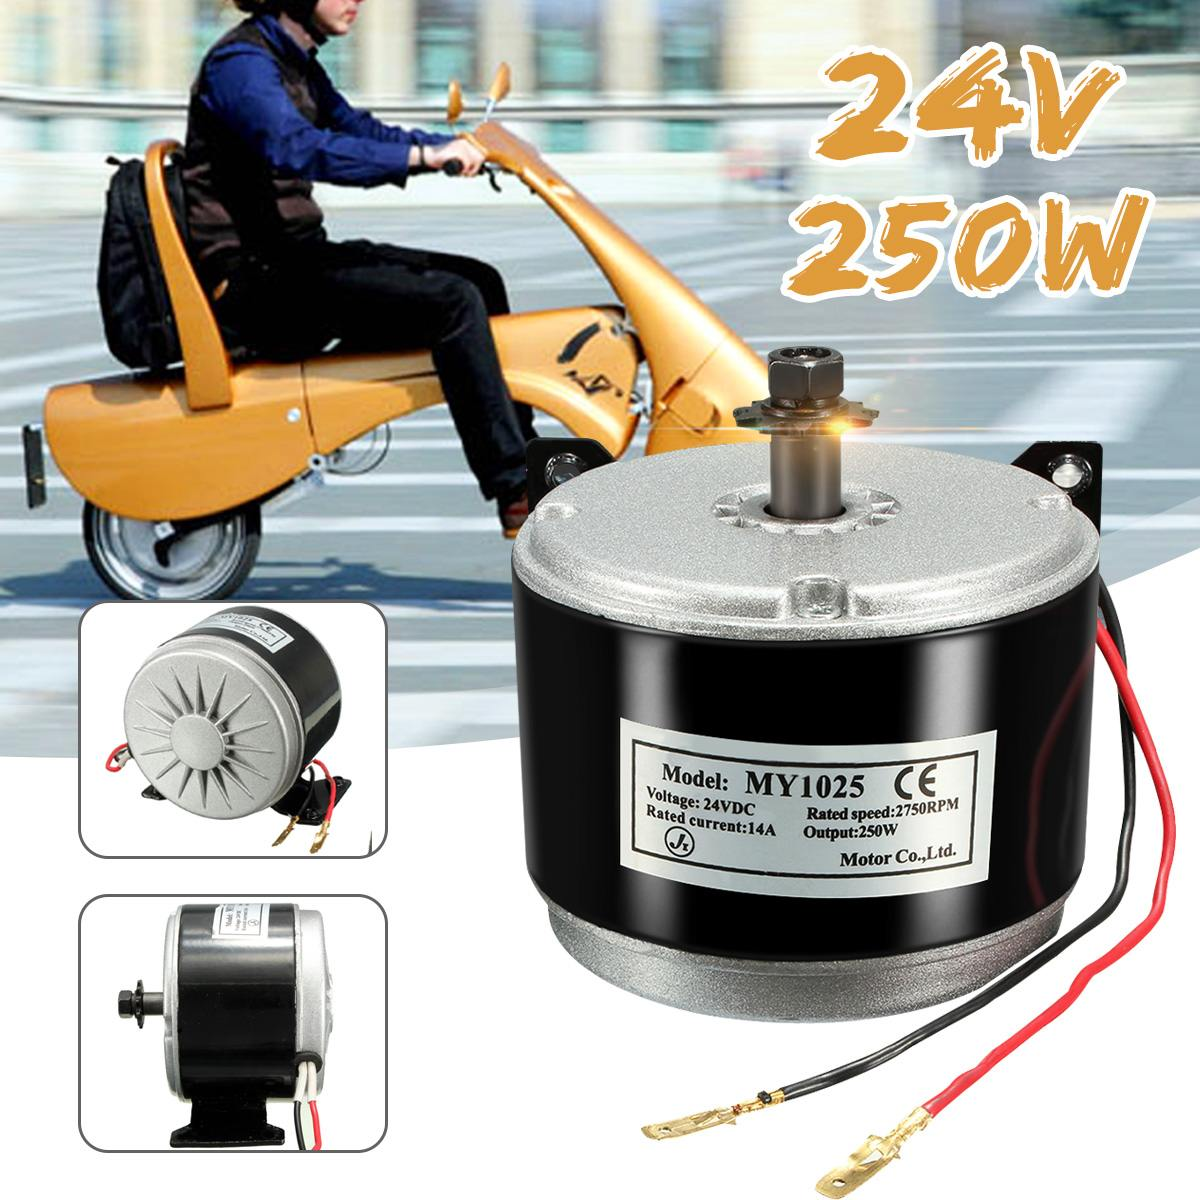 MY1025 24V DC Electric Motor Brushed 250W 2750RPM 2-Wired Chain For E Bike Scooter